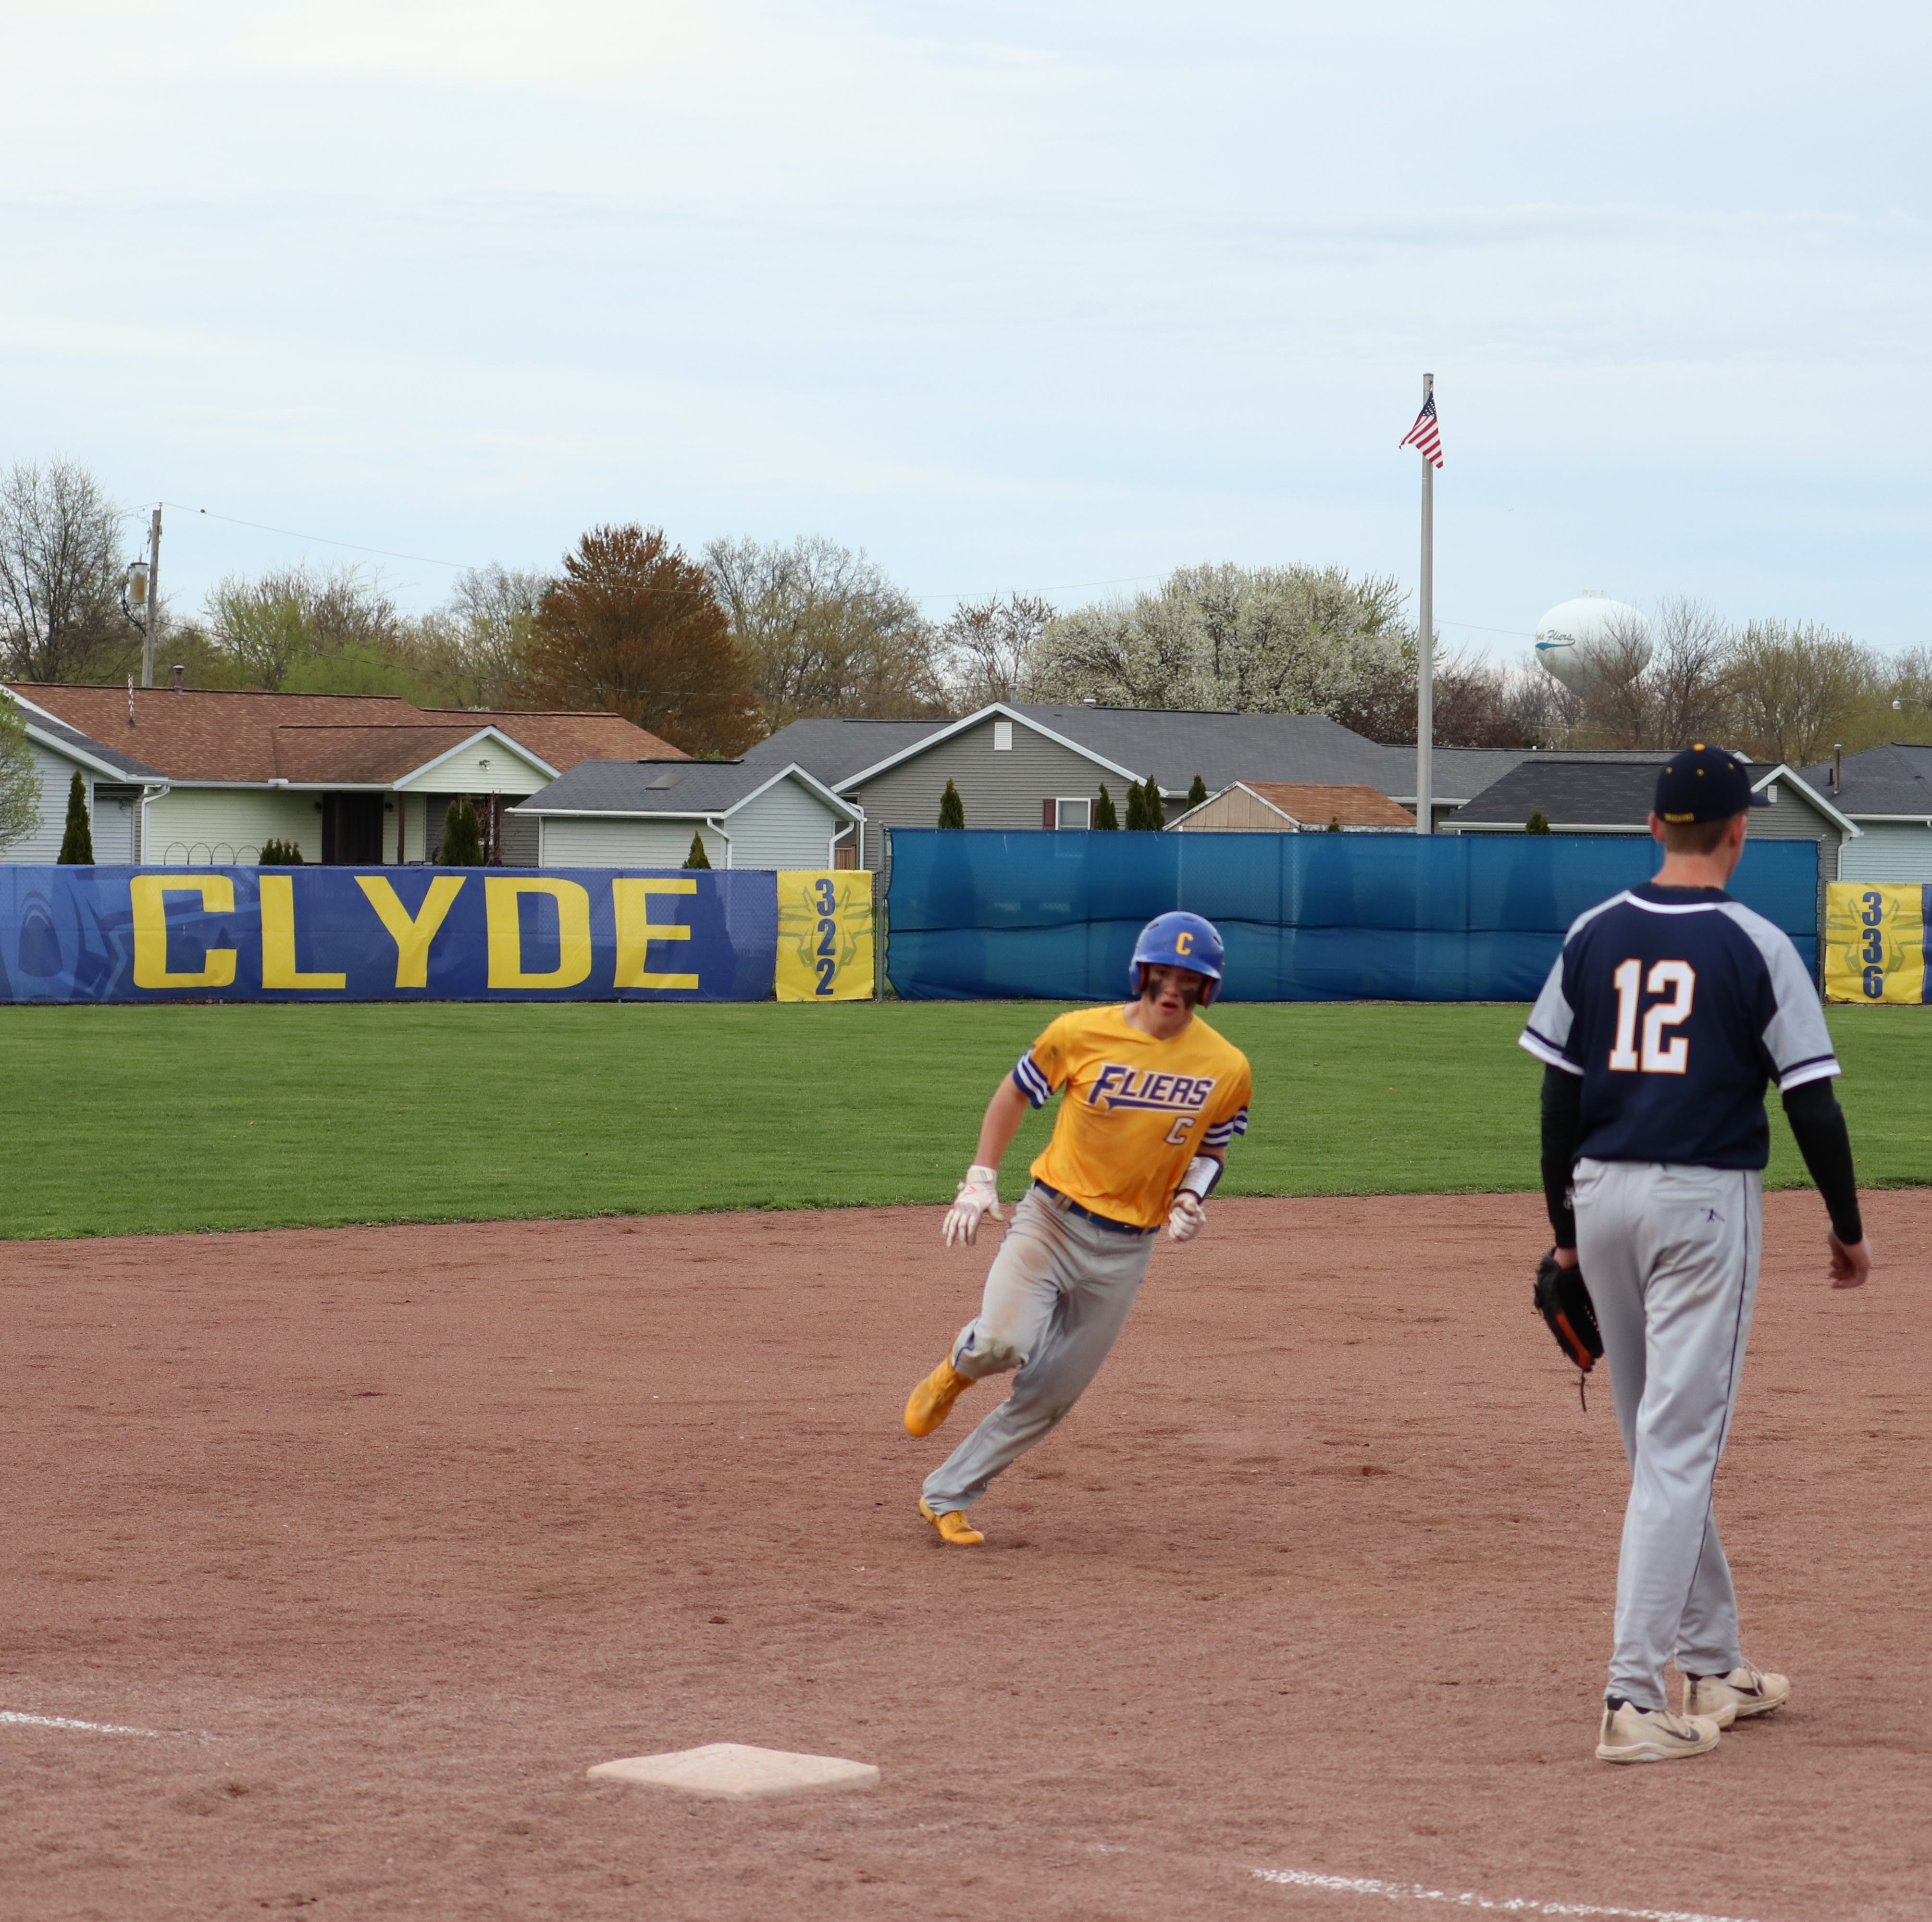 Clyde freshman Will Lozier leads off varsity career atop lineup